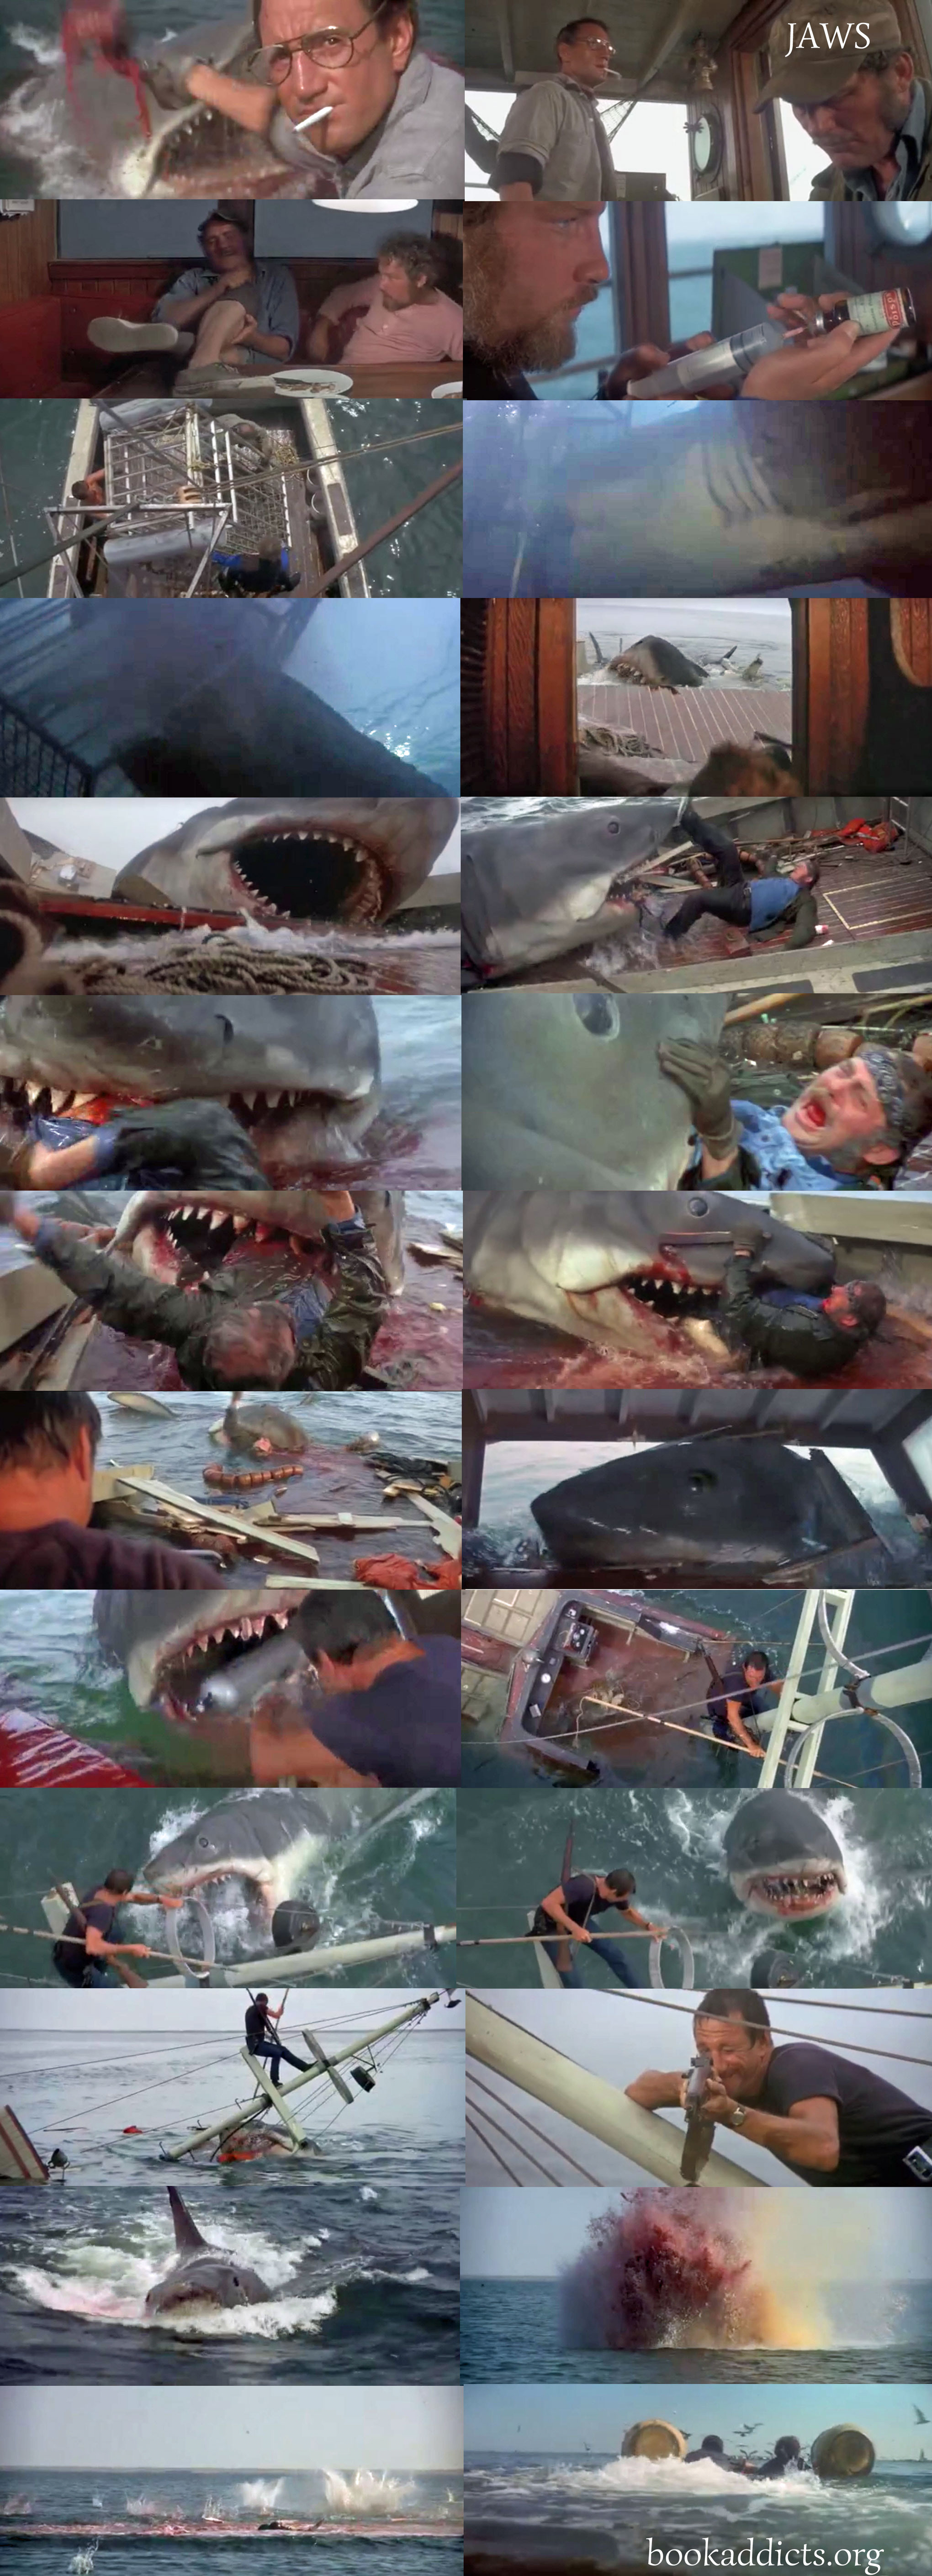 Jaws 1975 film review | Book Addicts